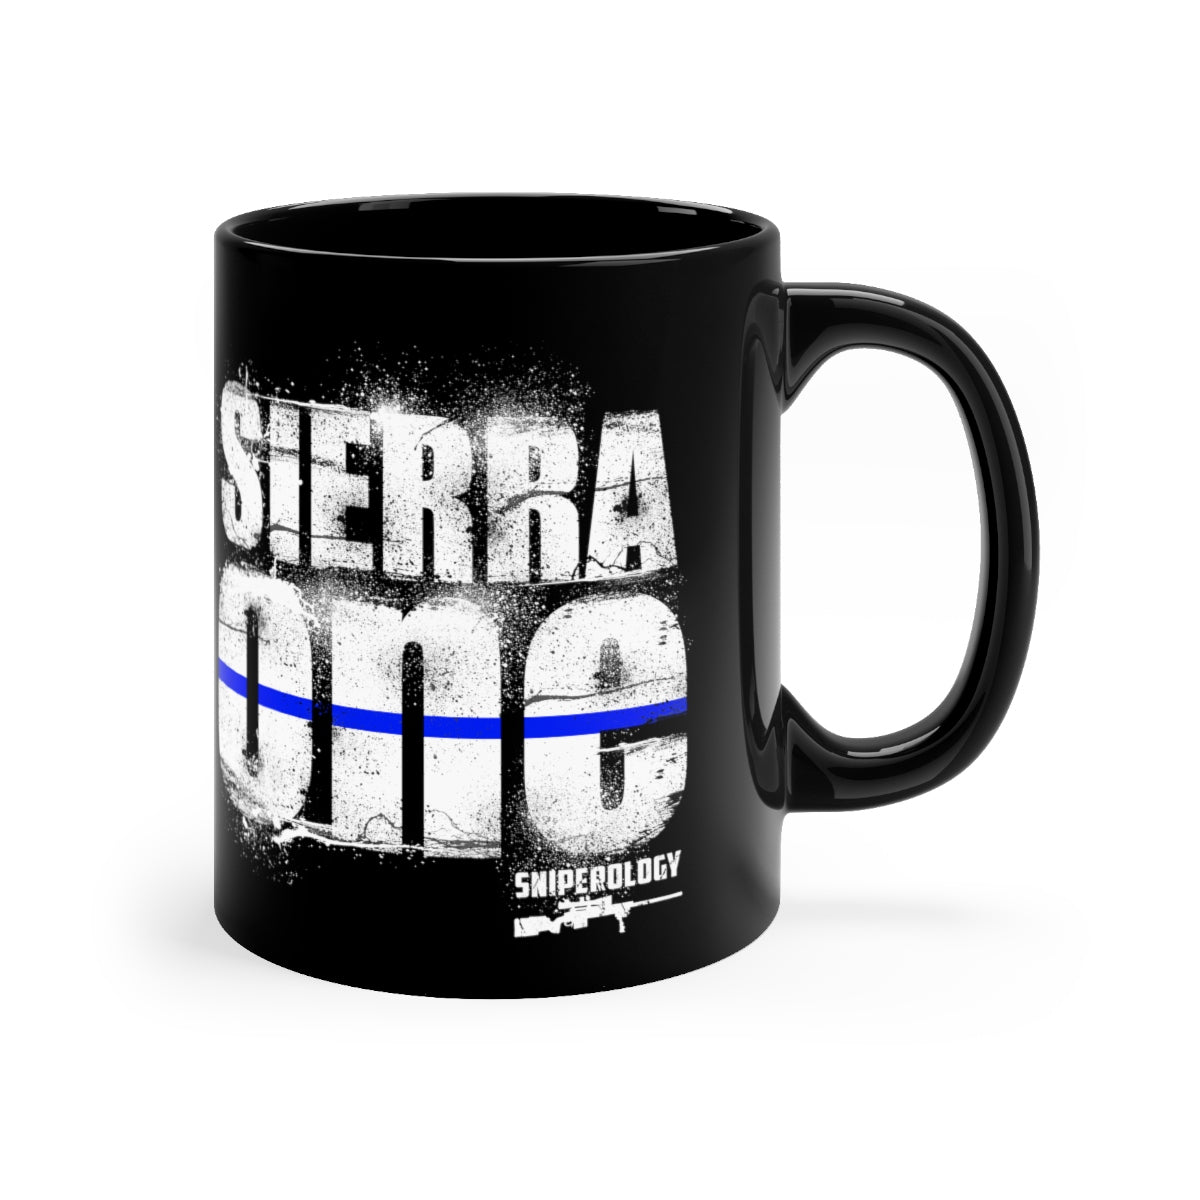 Sierra One - Black mug 11oz - Sniperology